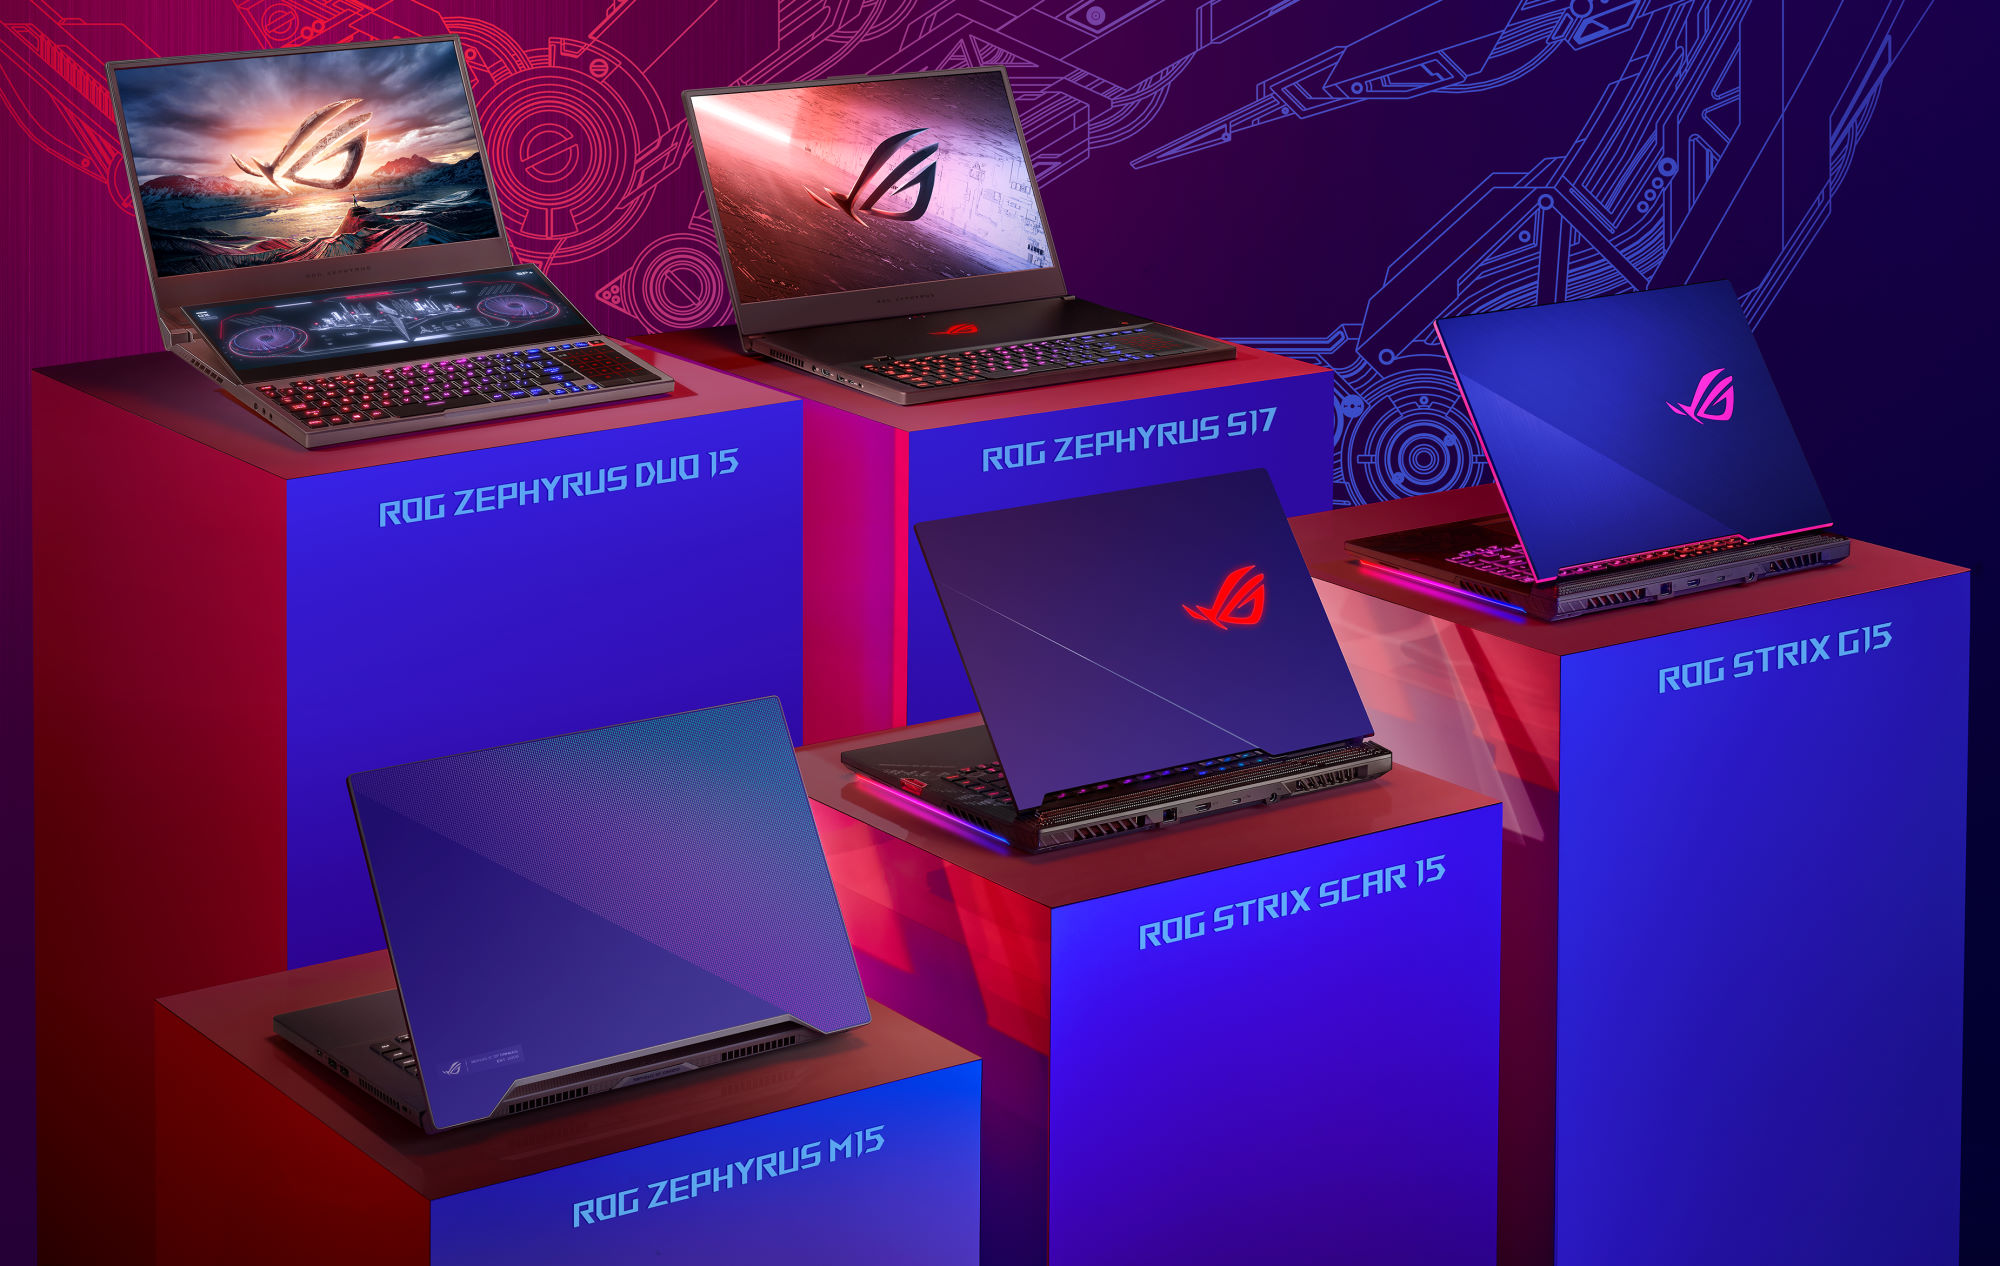 Spring 2020 Gaming Laptop Guide Rog Gets Cooler Than Ever With Liquid Metal And A Second Screen Rog Republic Of Gamers Global